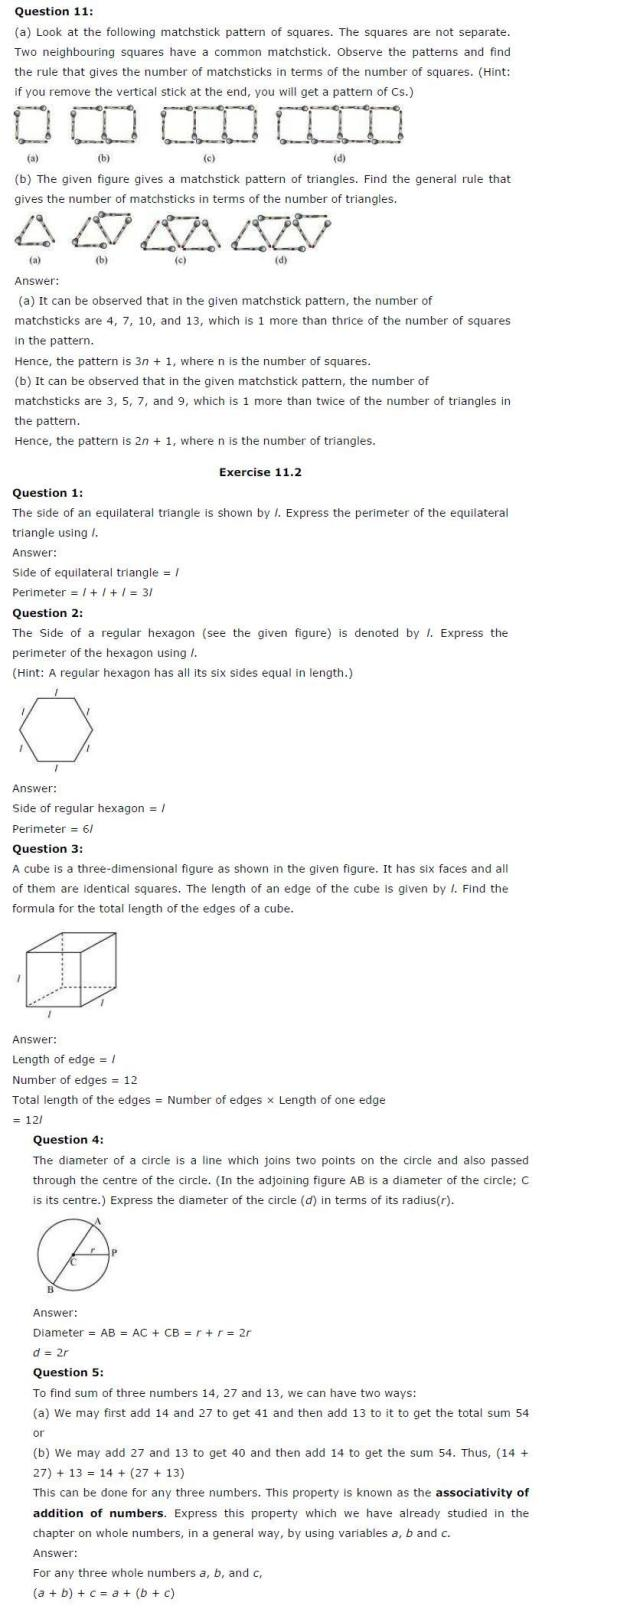 CBSE Solutions for Class 6th Maths: Chapter 11 – Algebra